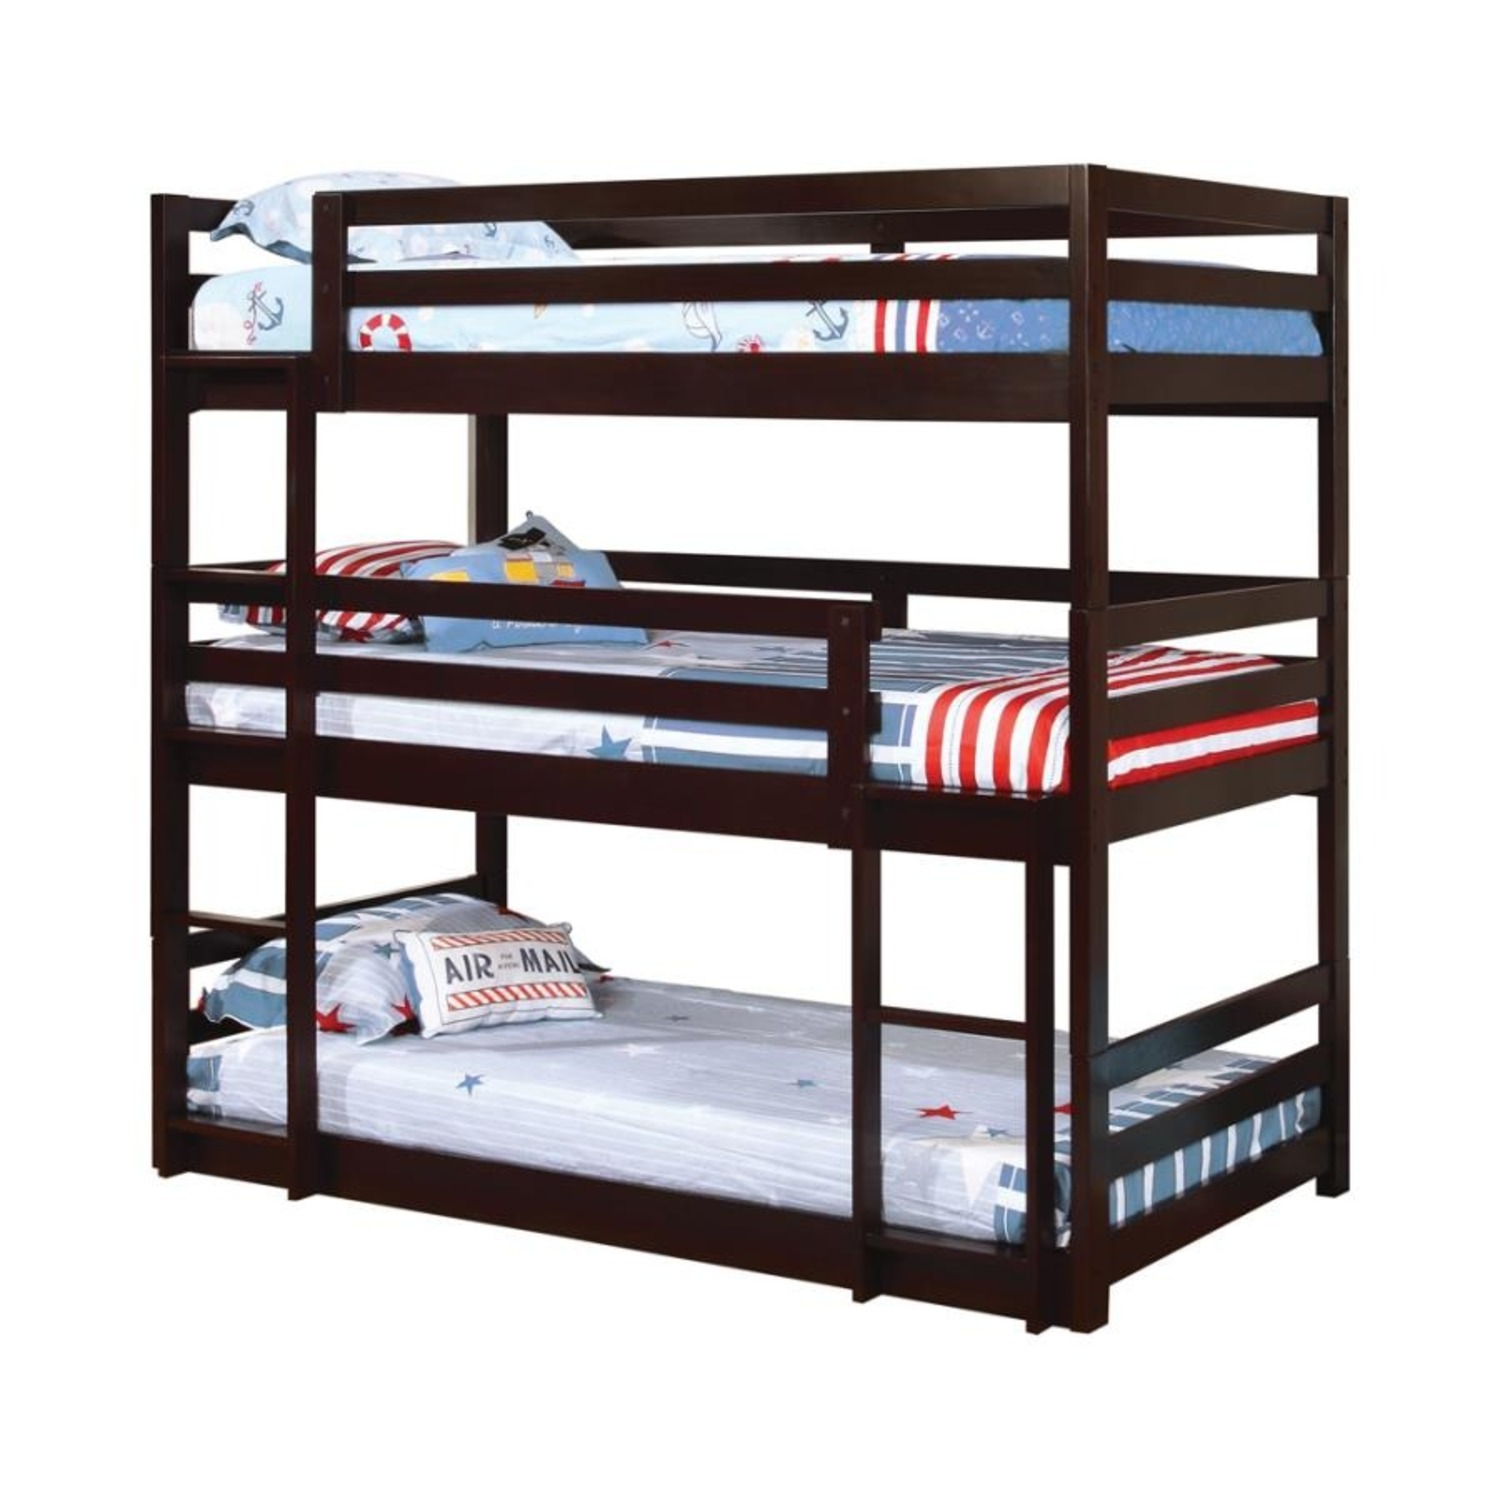 Triple Twin Bunk Bed In Cappuccino Finish - image-1